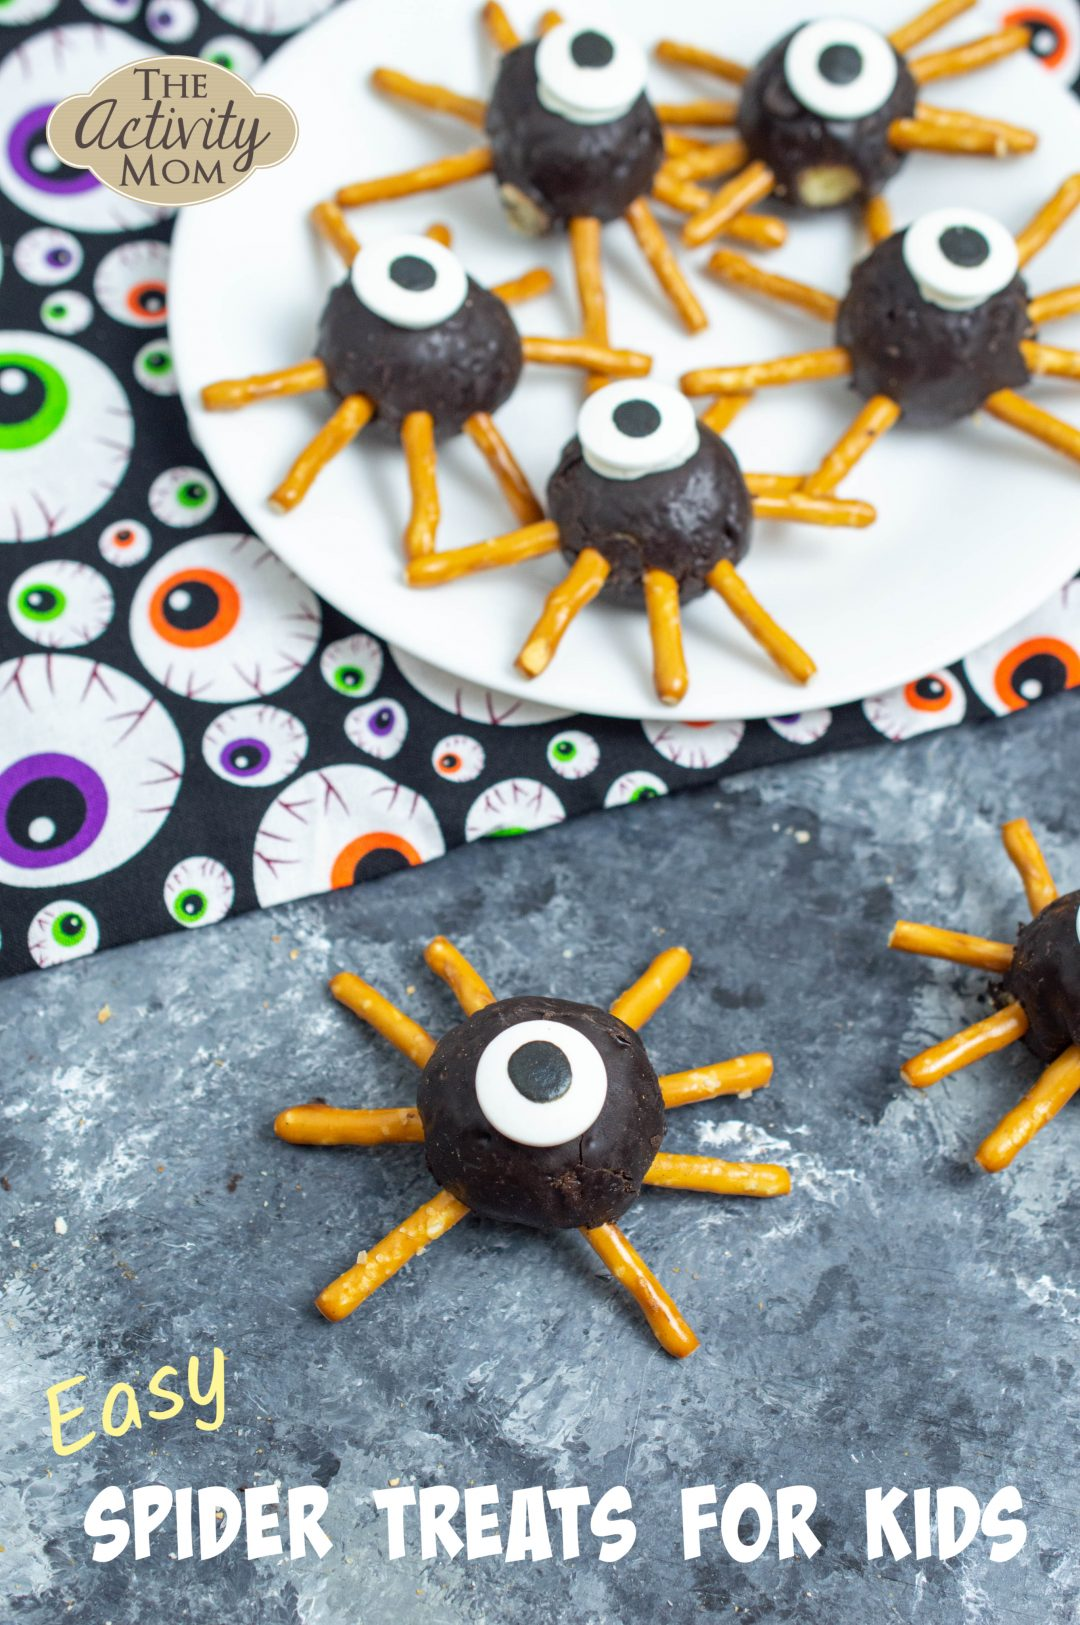 Easy Spider Treats to Make for Kids